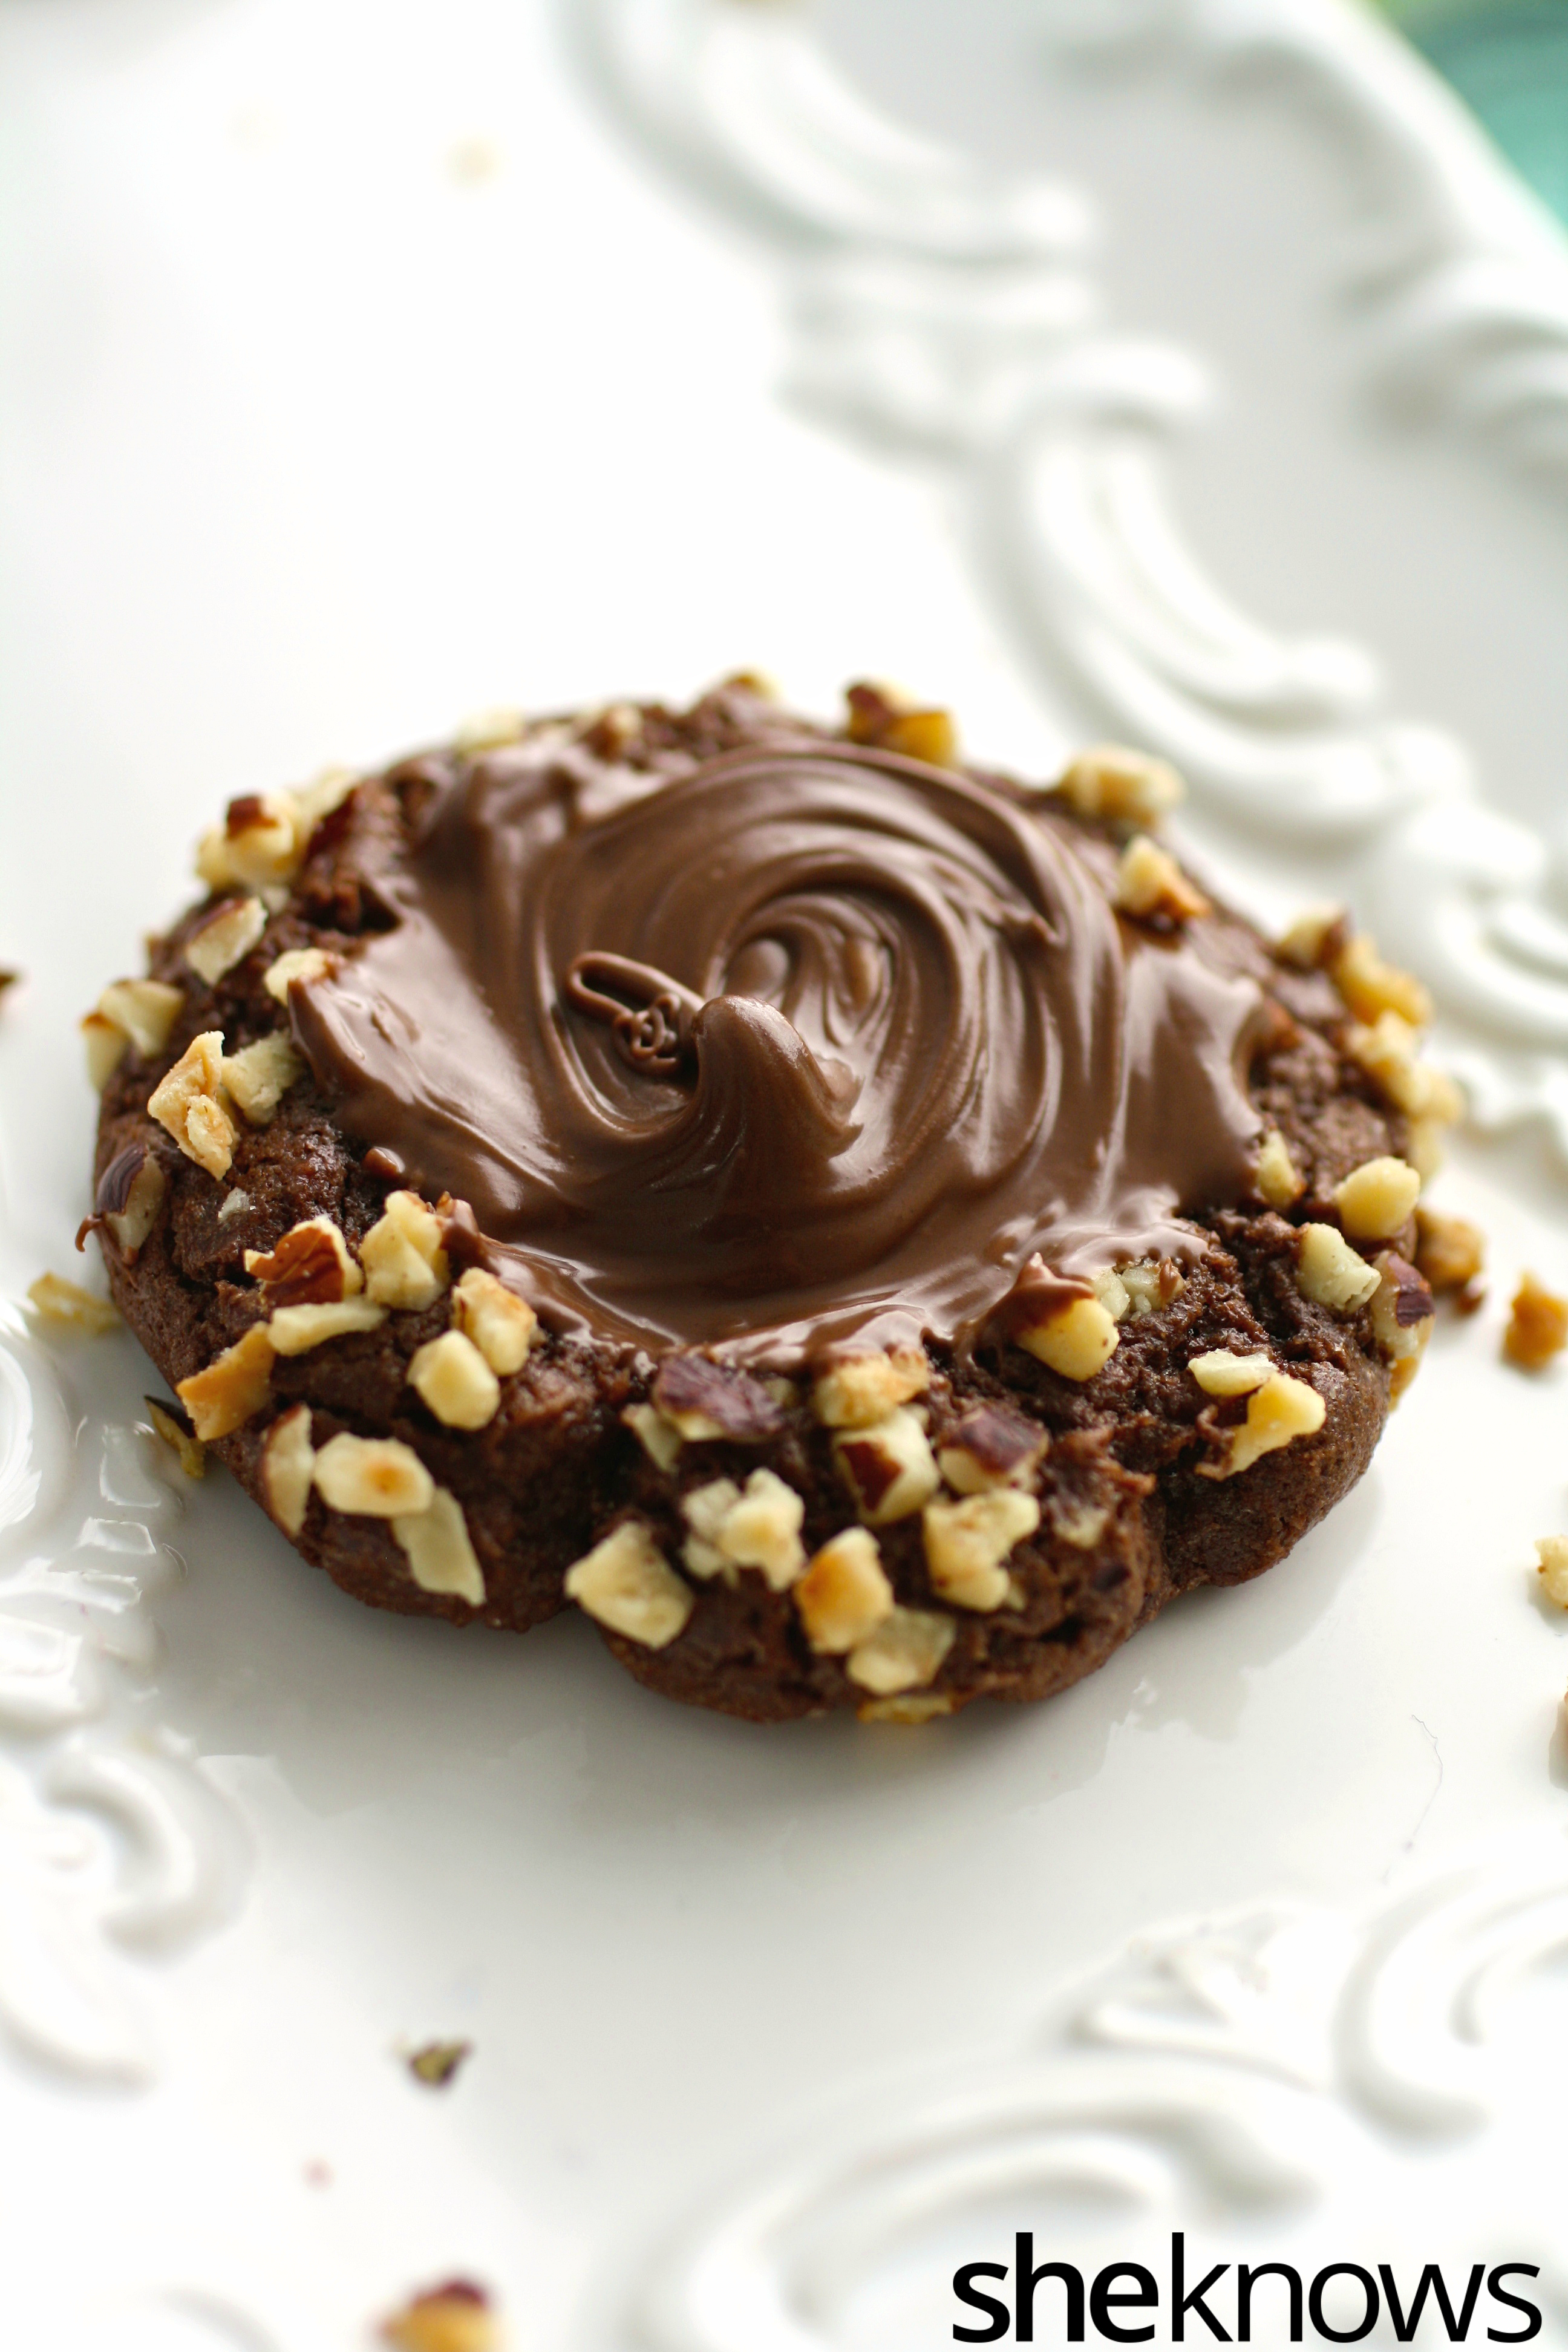 Get your hands on these chocolate Nutella-filled thumbprint cookies!